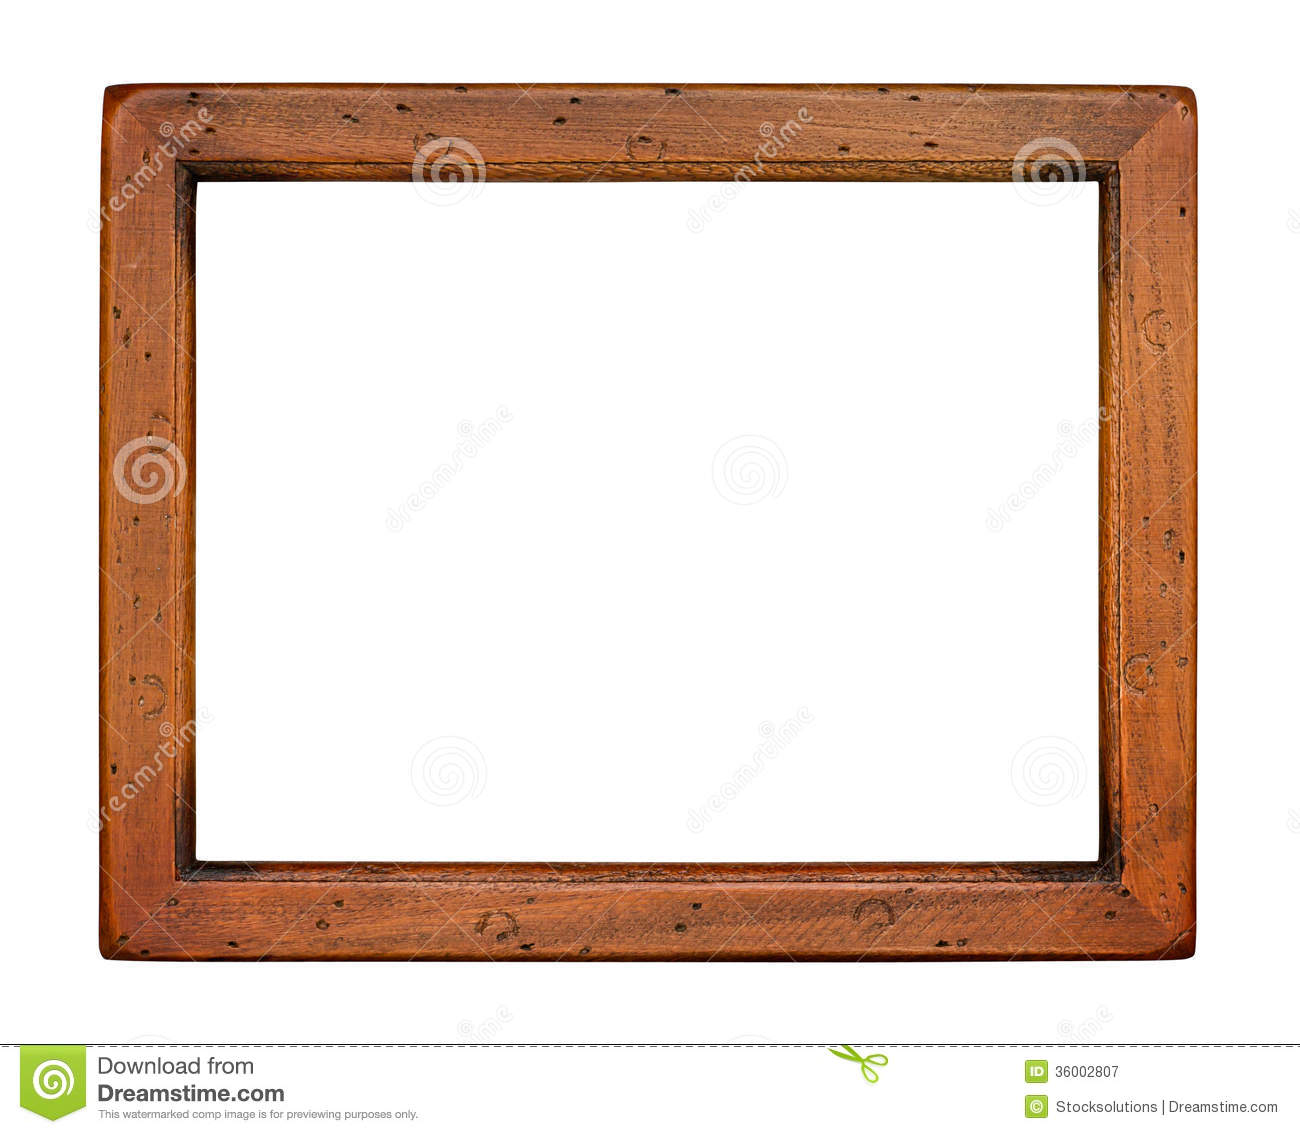 Flat Plain Wooden Picture Frame Stock Image - Image of ... Plain Wooden Frame